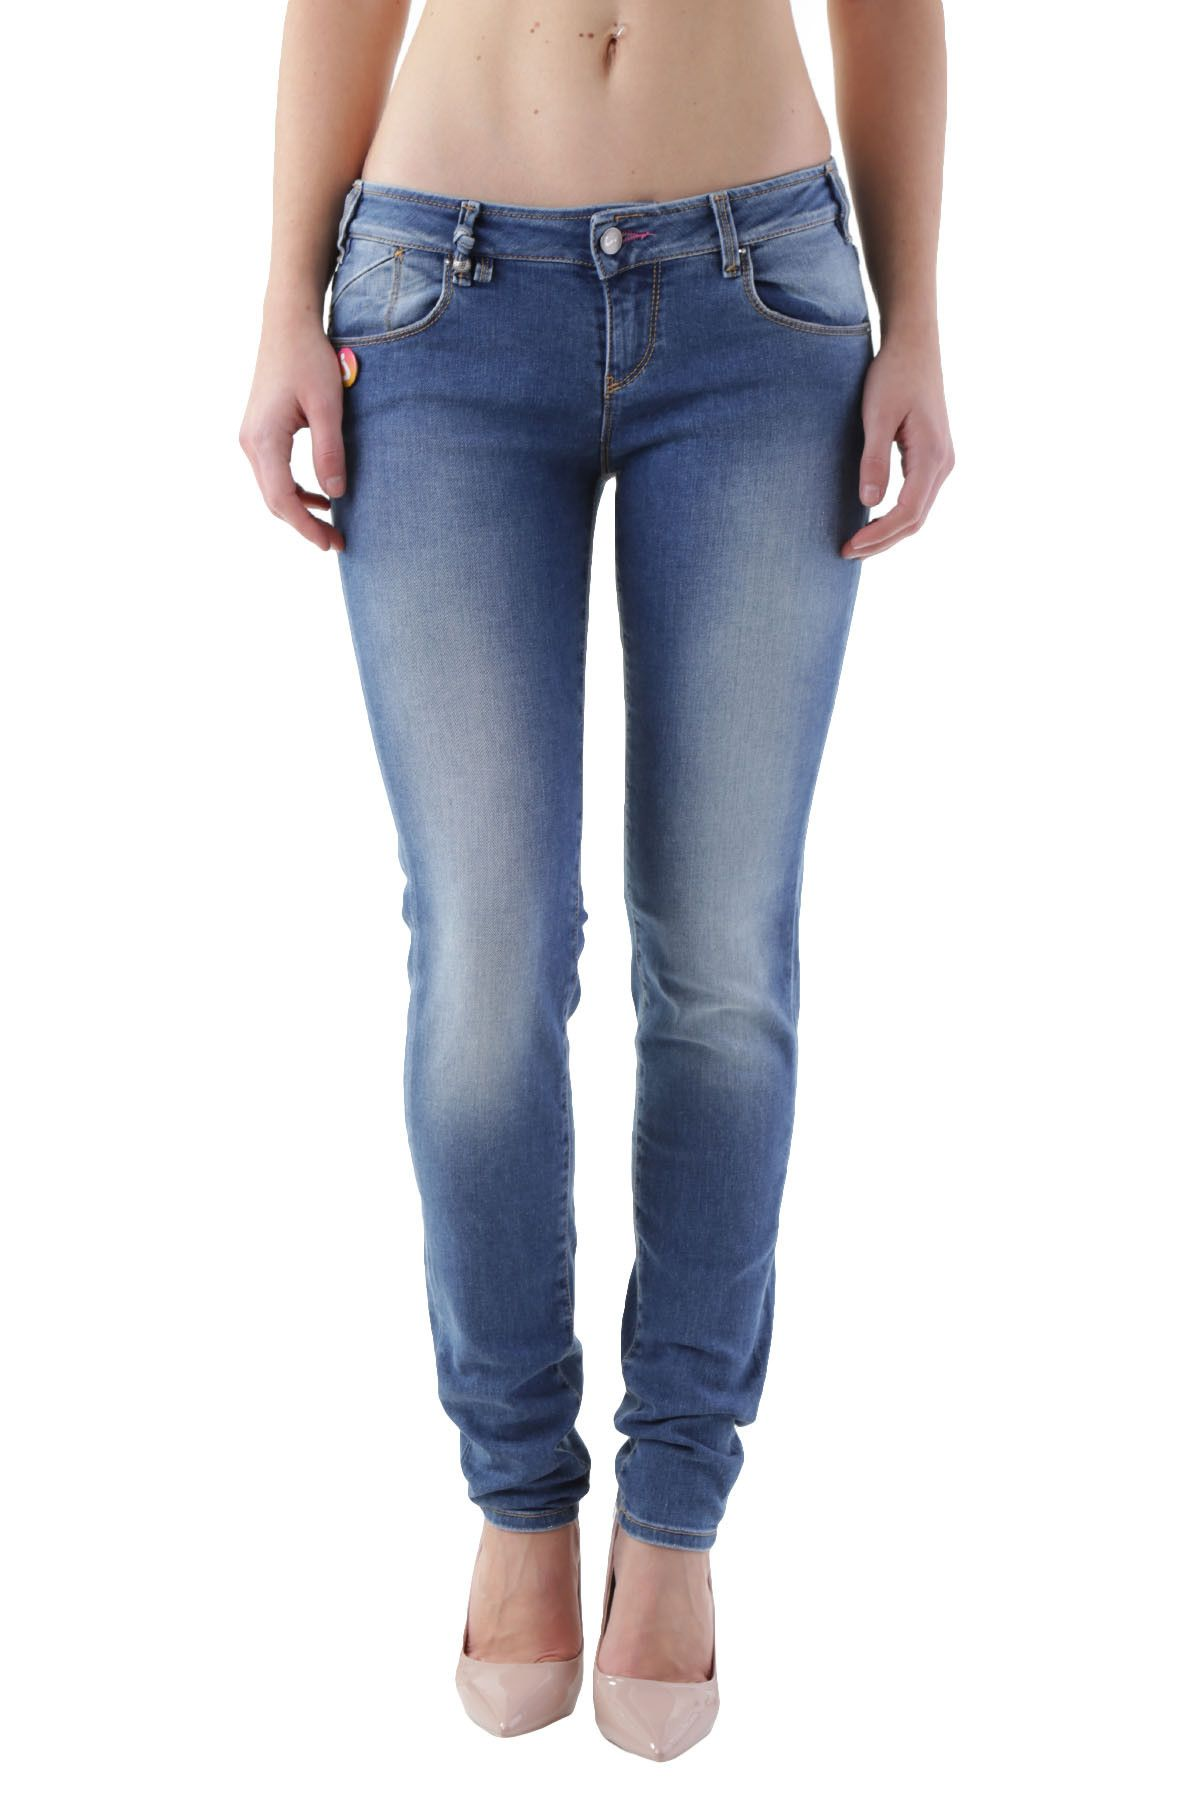 Jcolor Women's Jeans In Blue